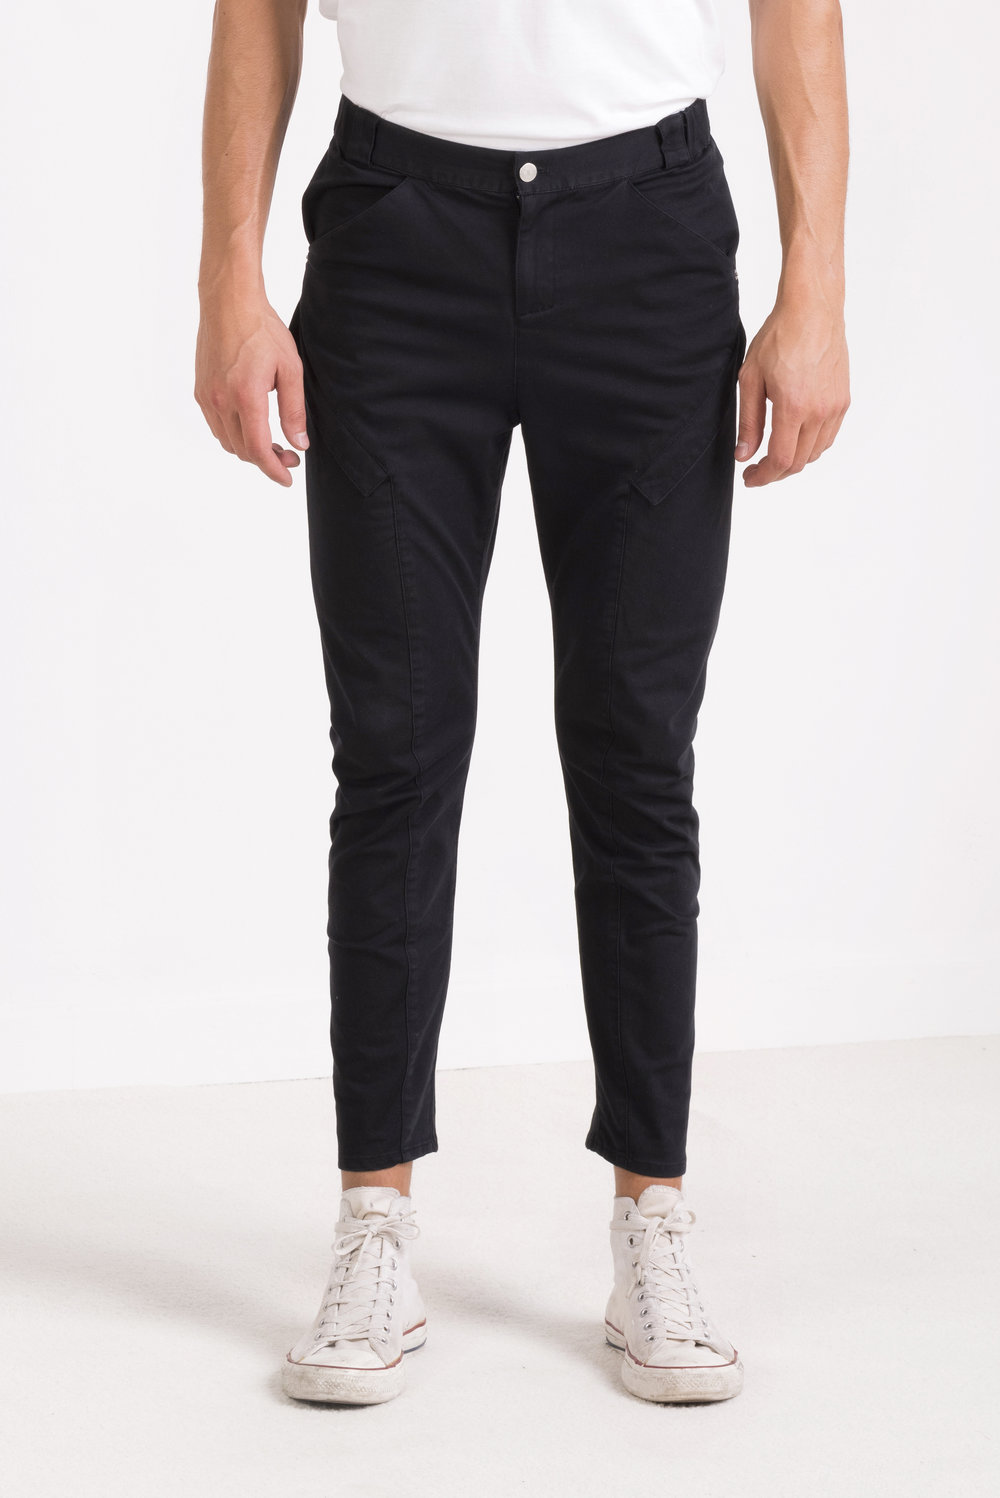 oneculture Fitted cargo pants 2.jpg